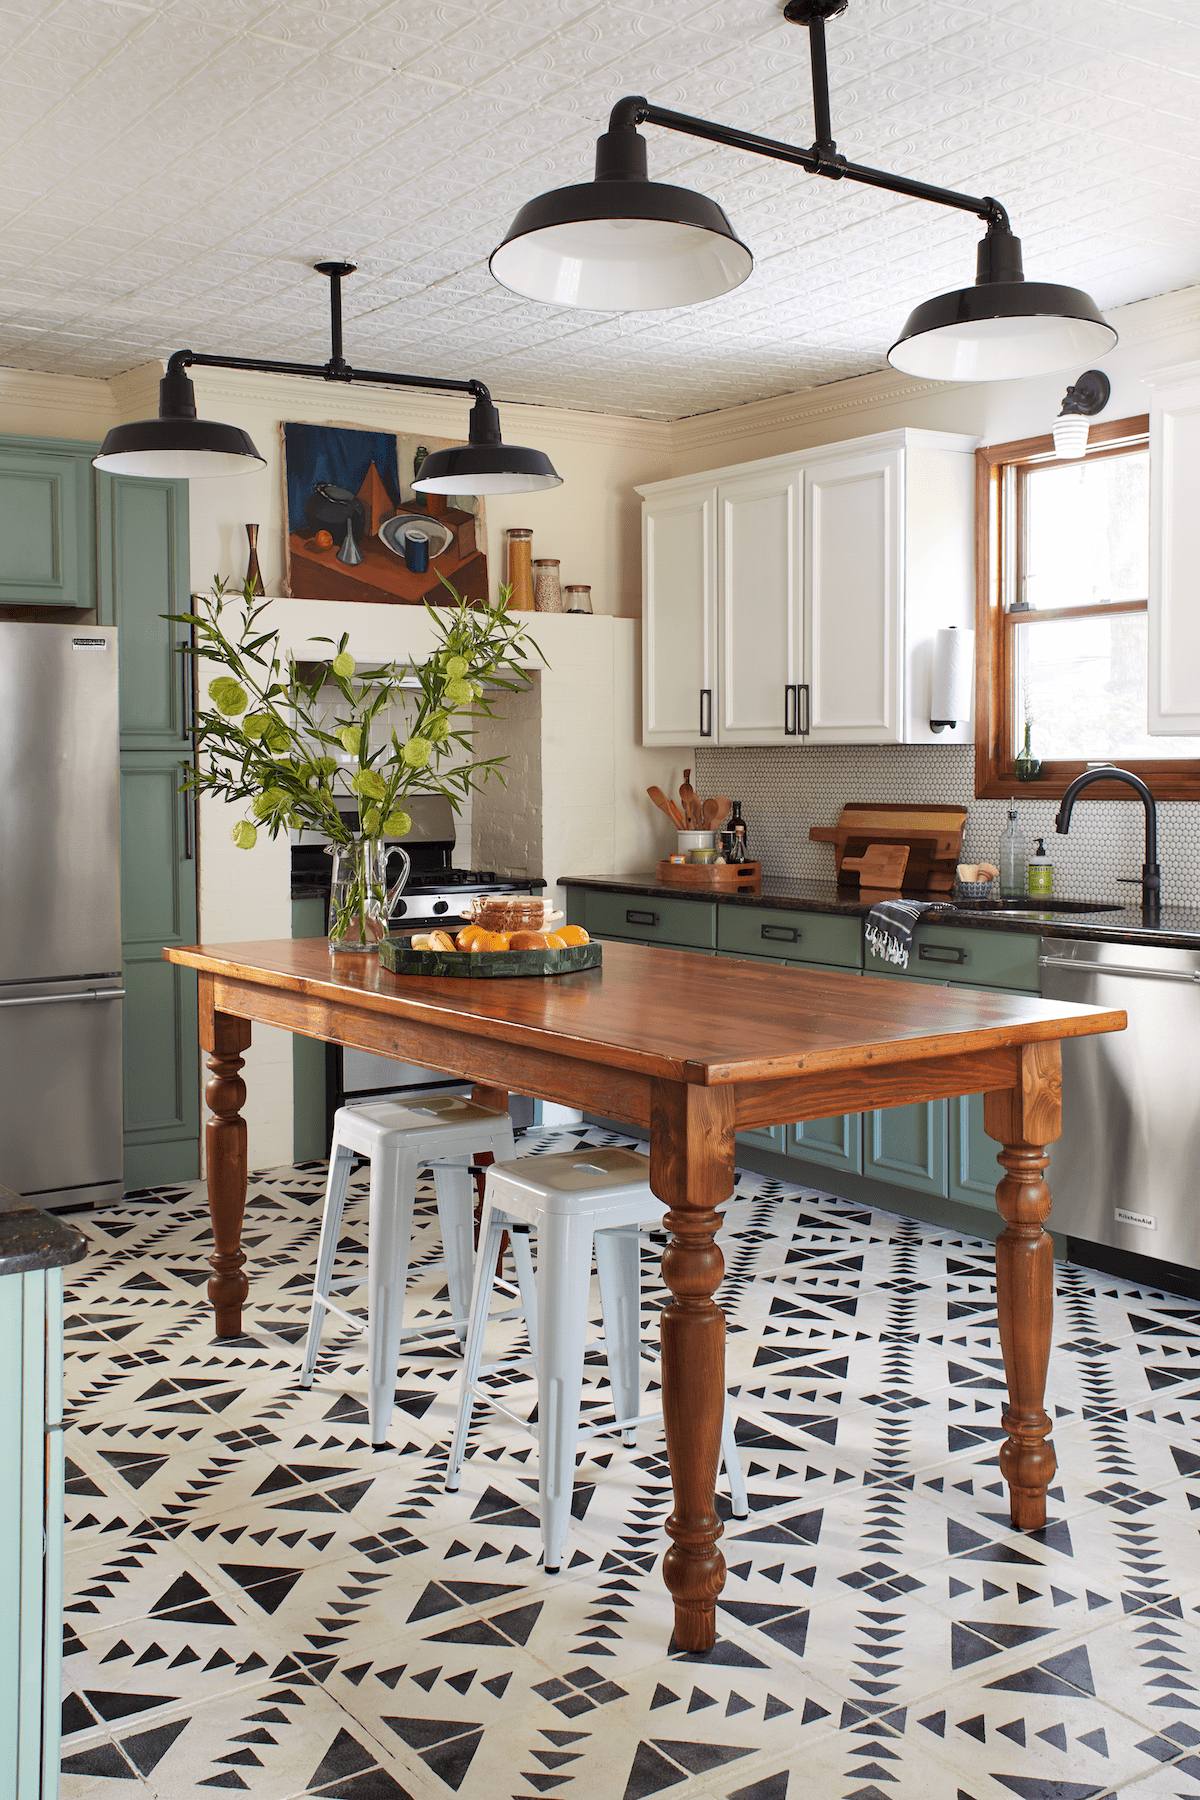 I Painted My Entire Kitchen with Chalk Paint   Kitchn on paint ideas for decks, paint ideas for shelves, paint ideas for staircase, paint ideas for paper, paint ideas for paneling, paint ideas for chairs, paint ideas for basements, paint ideas for storage,